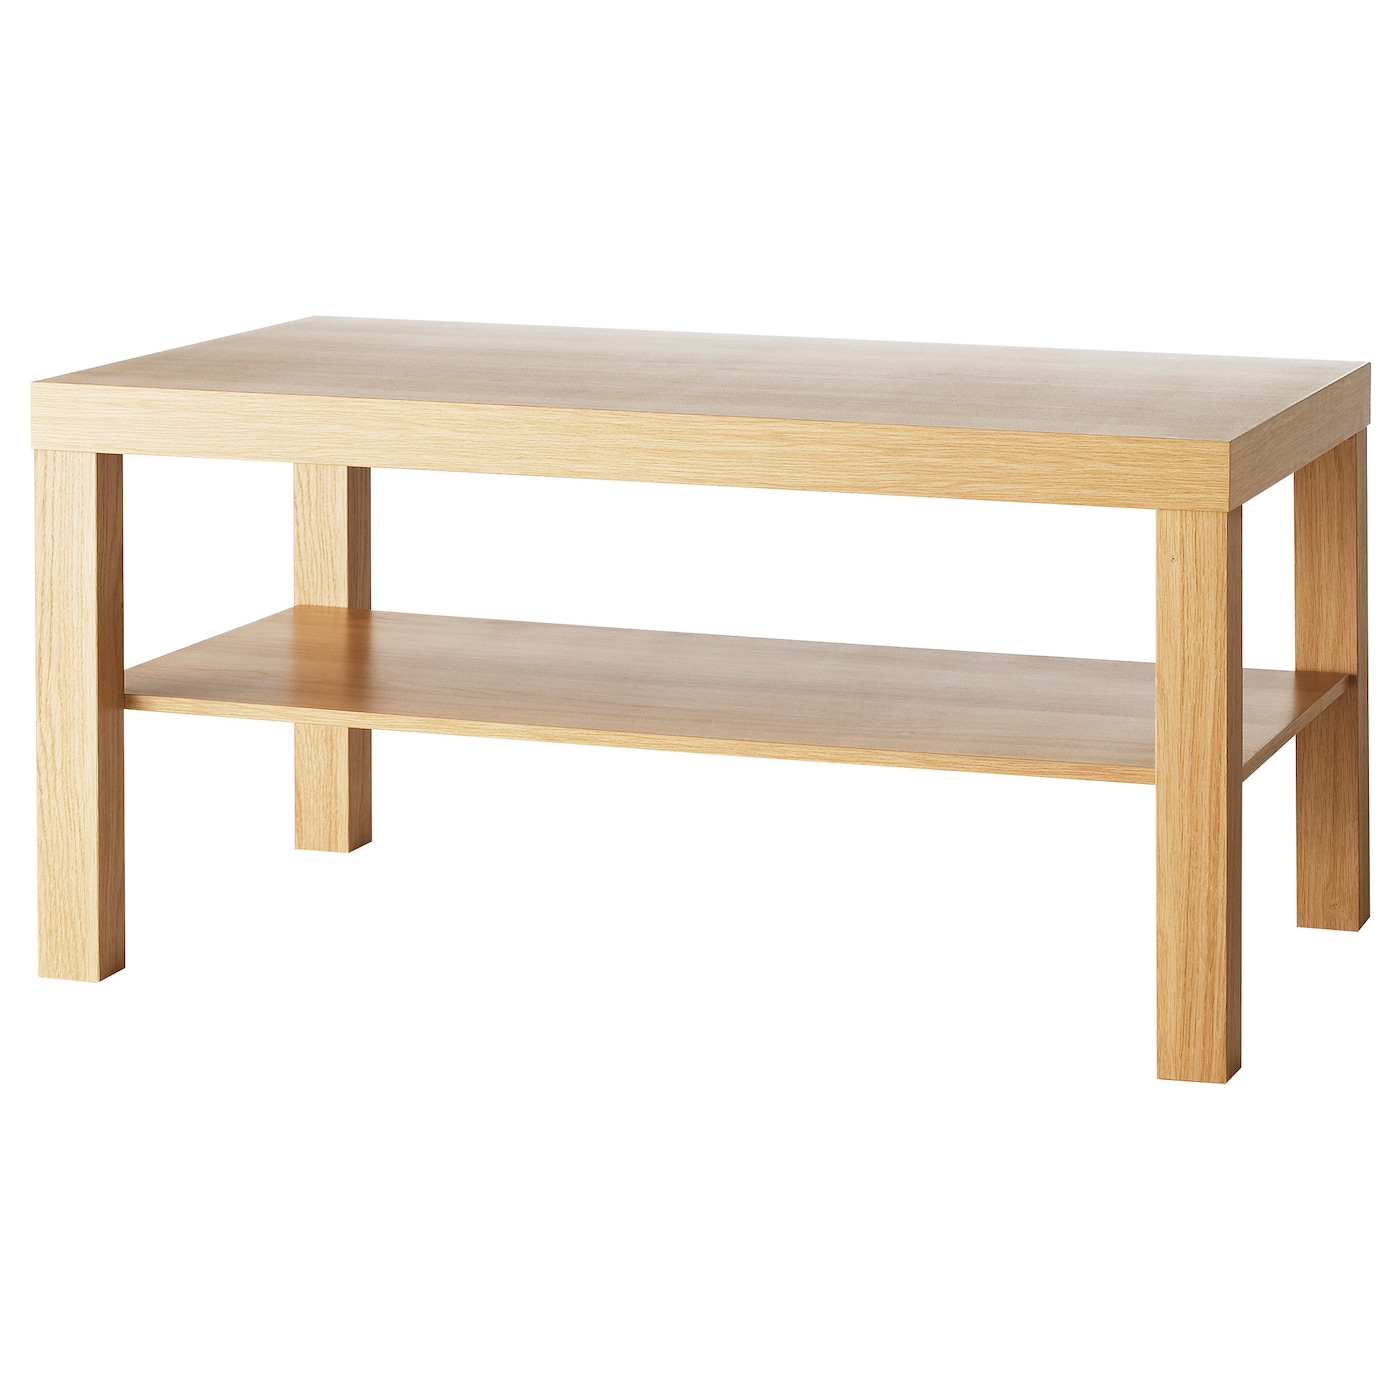 LACK Coffee table Oak effect 90x55 cm IKEA